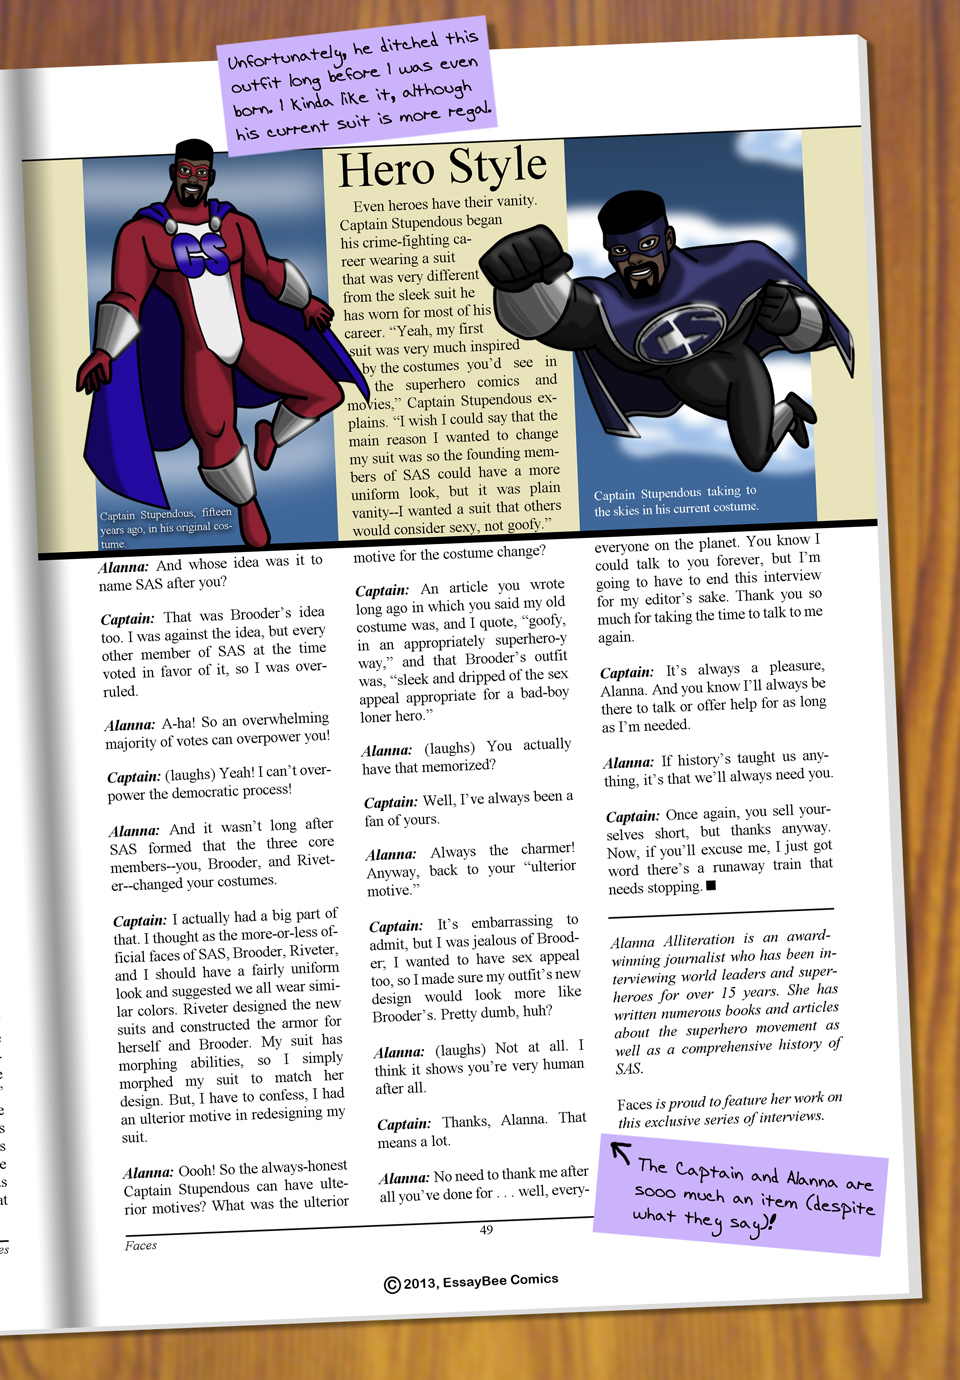 Interleude--Faces Magazine Interview 2 Page 06